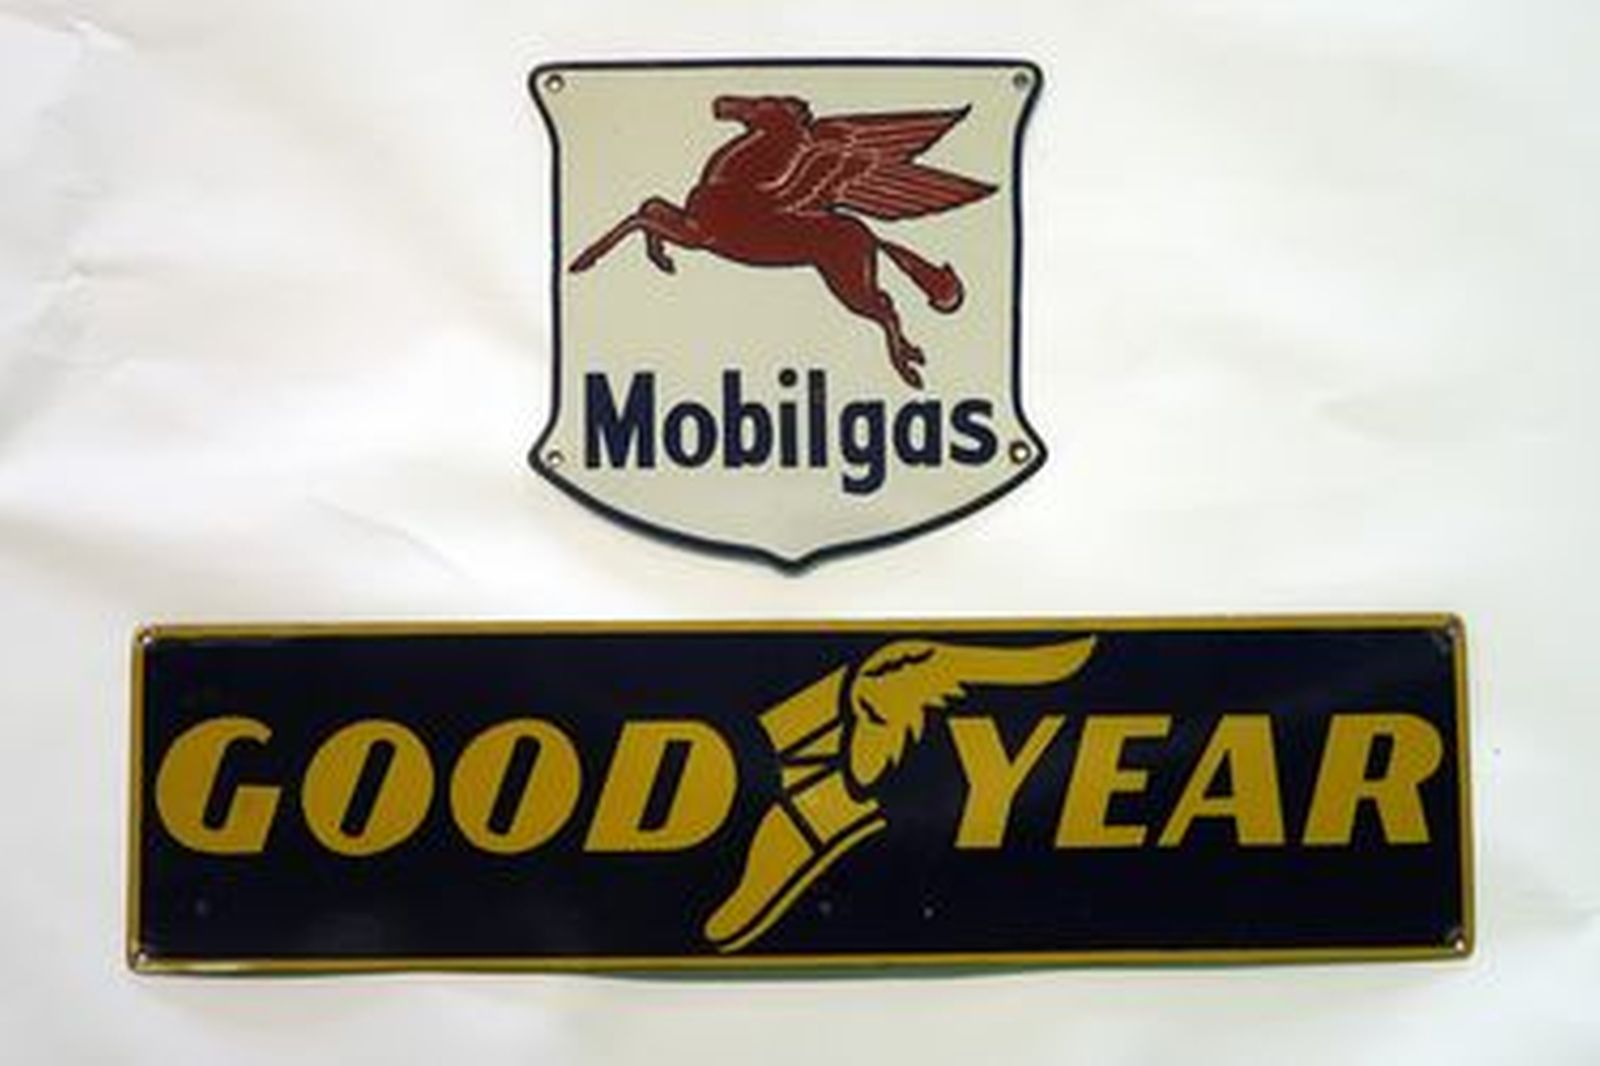 Enamel Signs x 2 - Mobilgas Shield (31 x 28cm) & Goodyear (80 x 20cm)